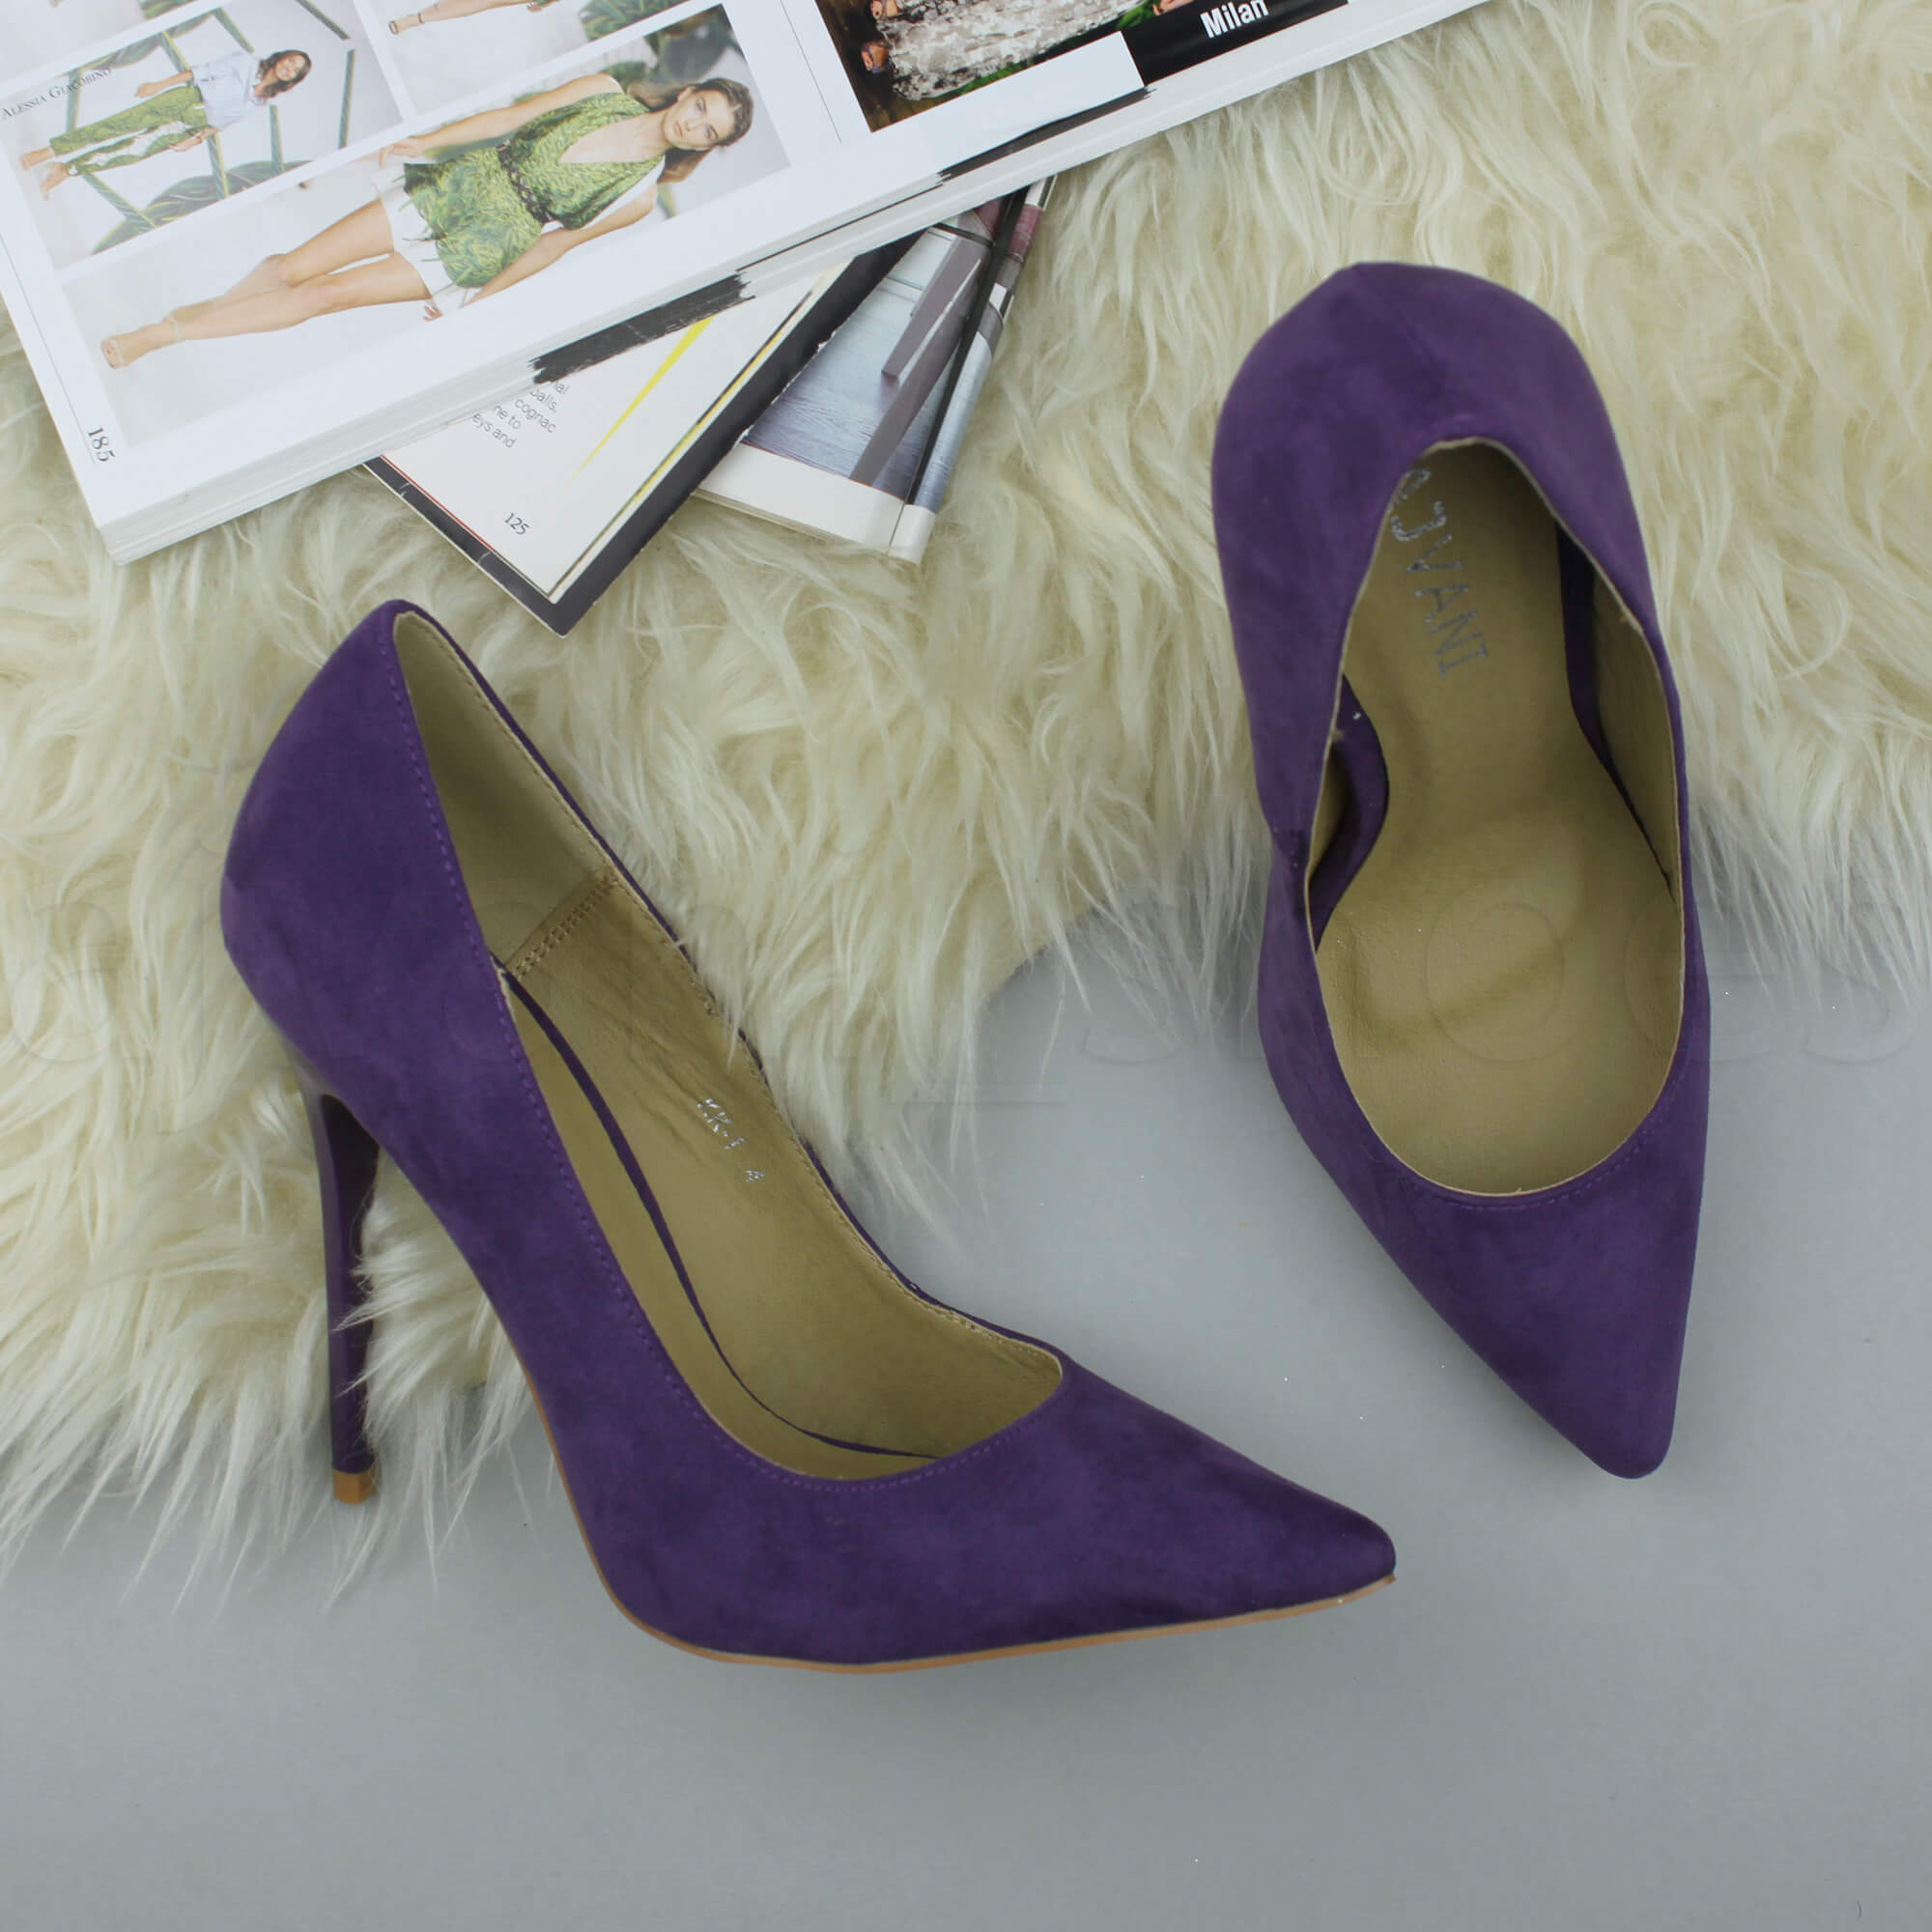 WOMENS-LADIES-HIGH-HEEL-POINTED-CONTRAST-COURT-SMART-PARTY-WORK-SHOES-PUMPS-SIZE thumbnail 155